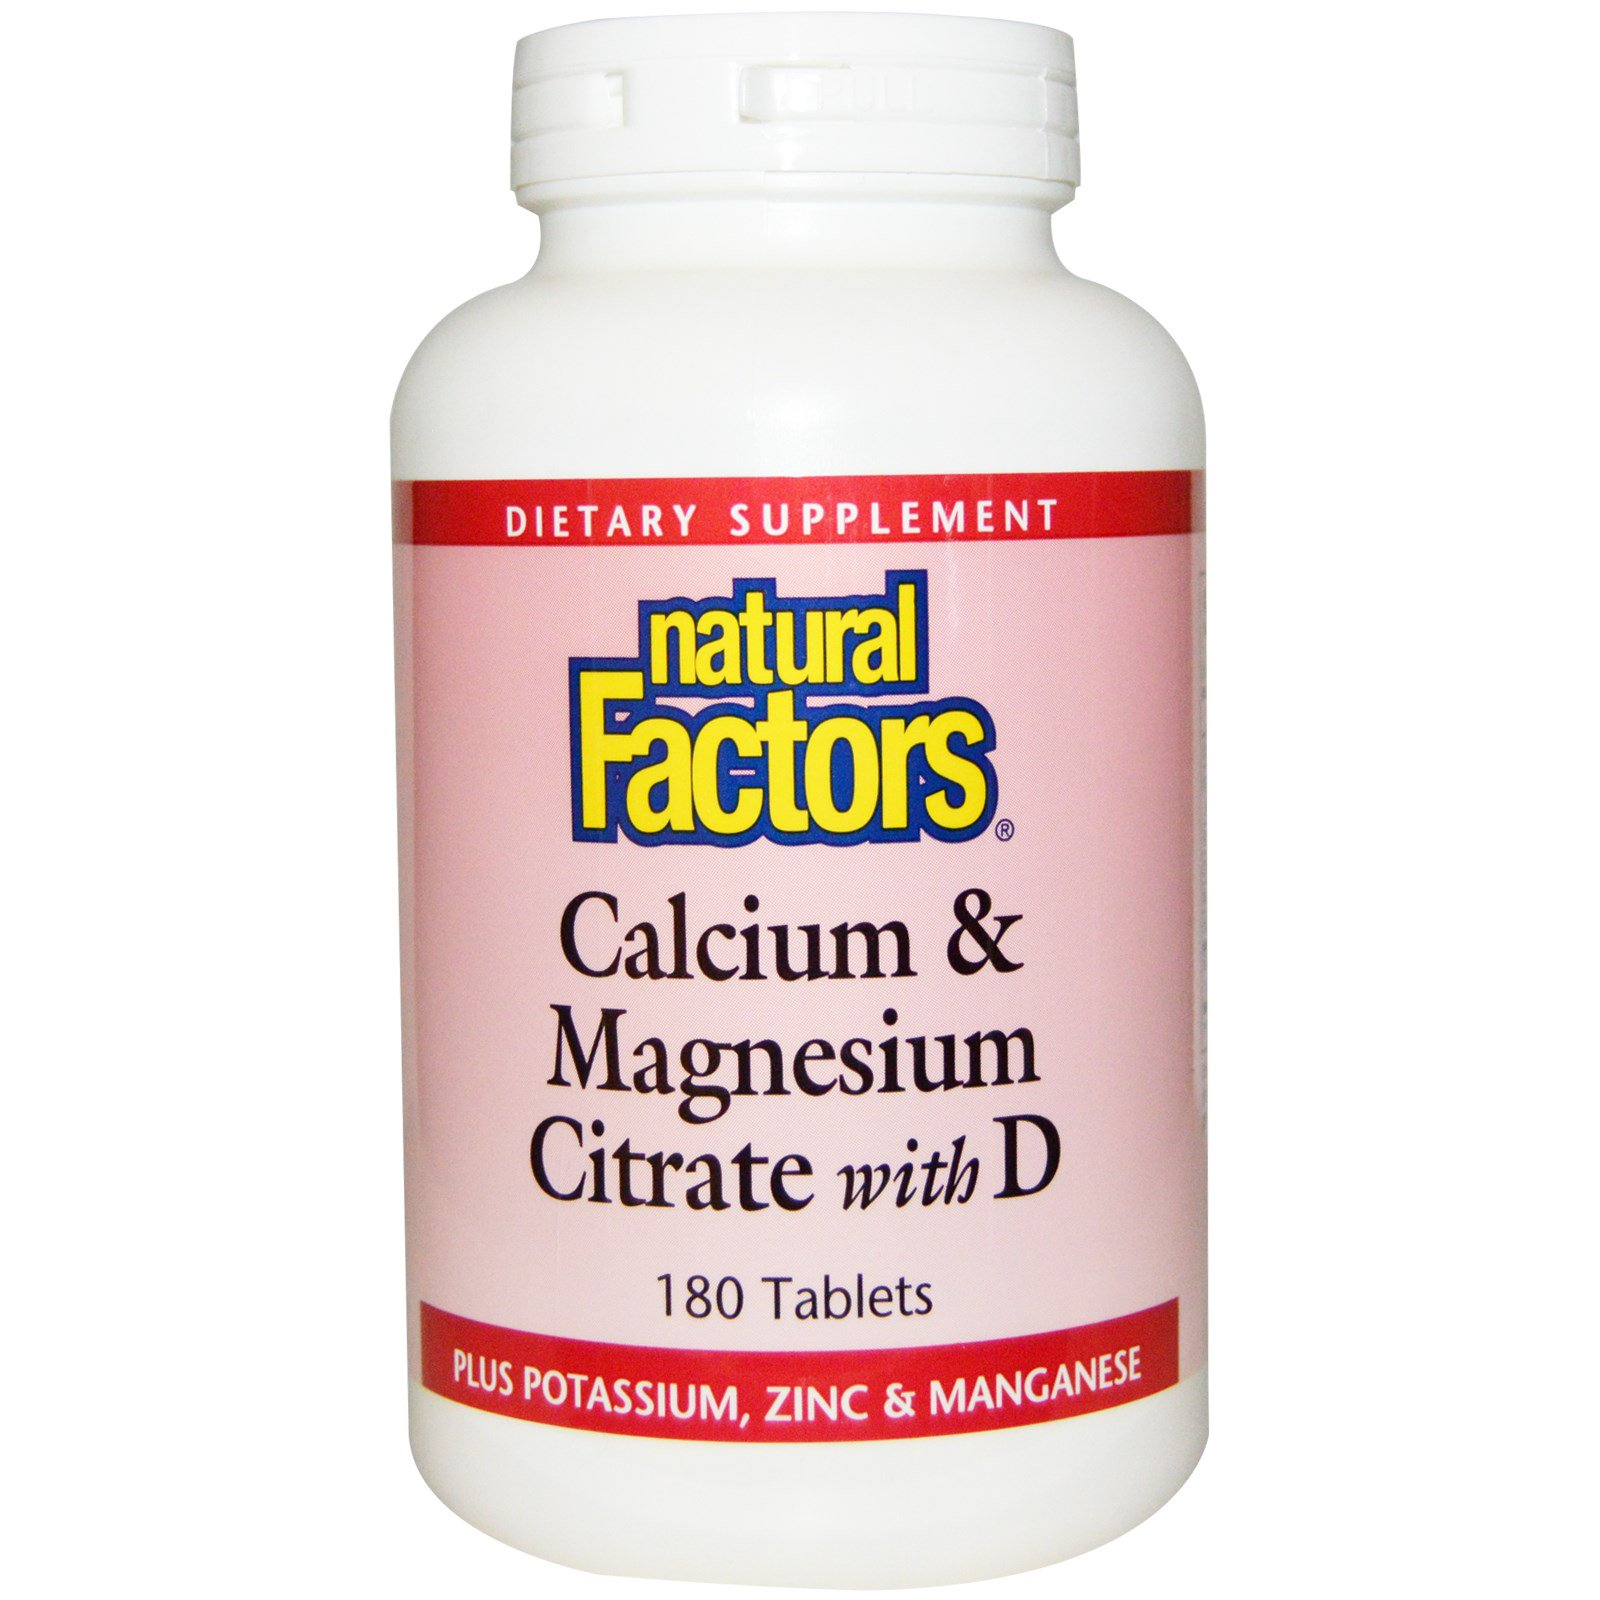 natural factors calcium magnesium citrate with d 180 tablets. Black Bedroom Furniture Sets. Home Design Ideas